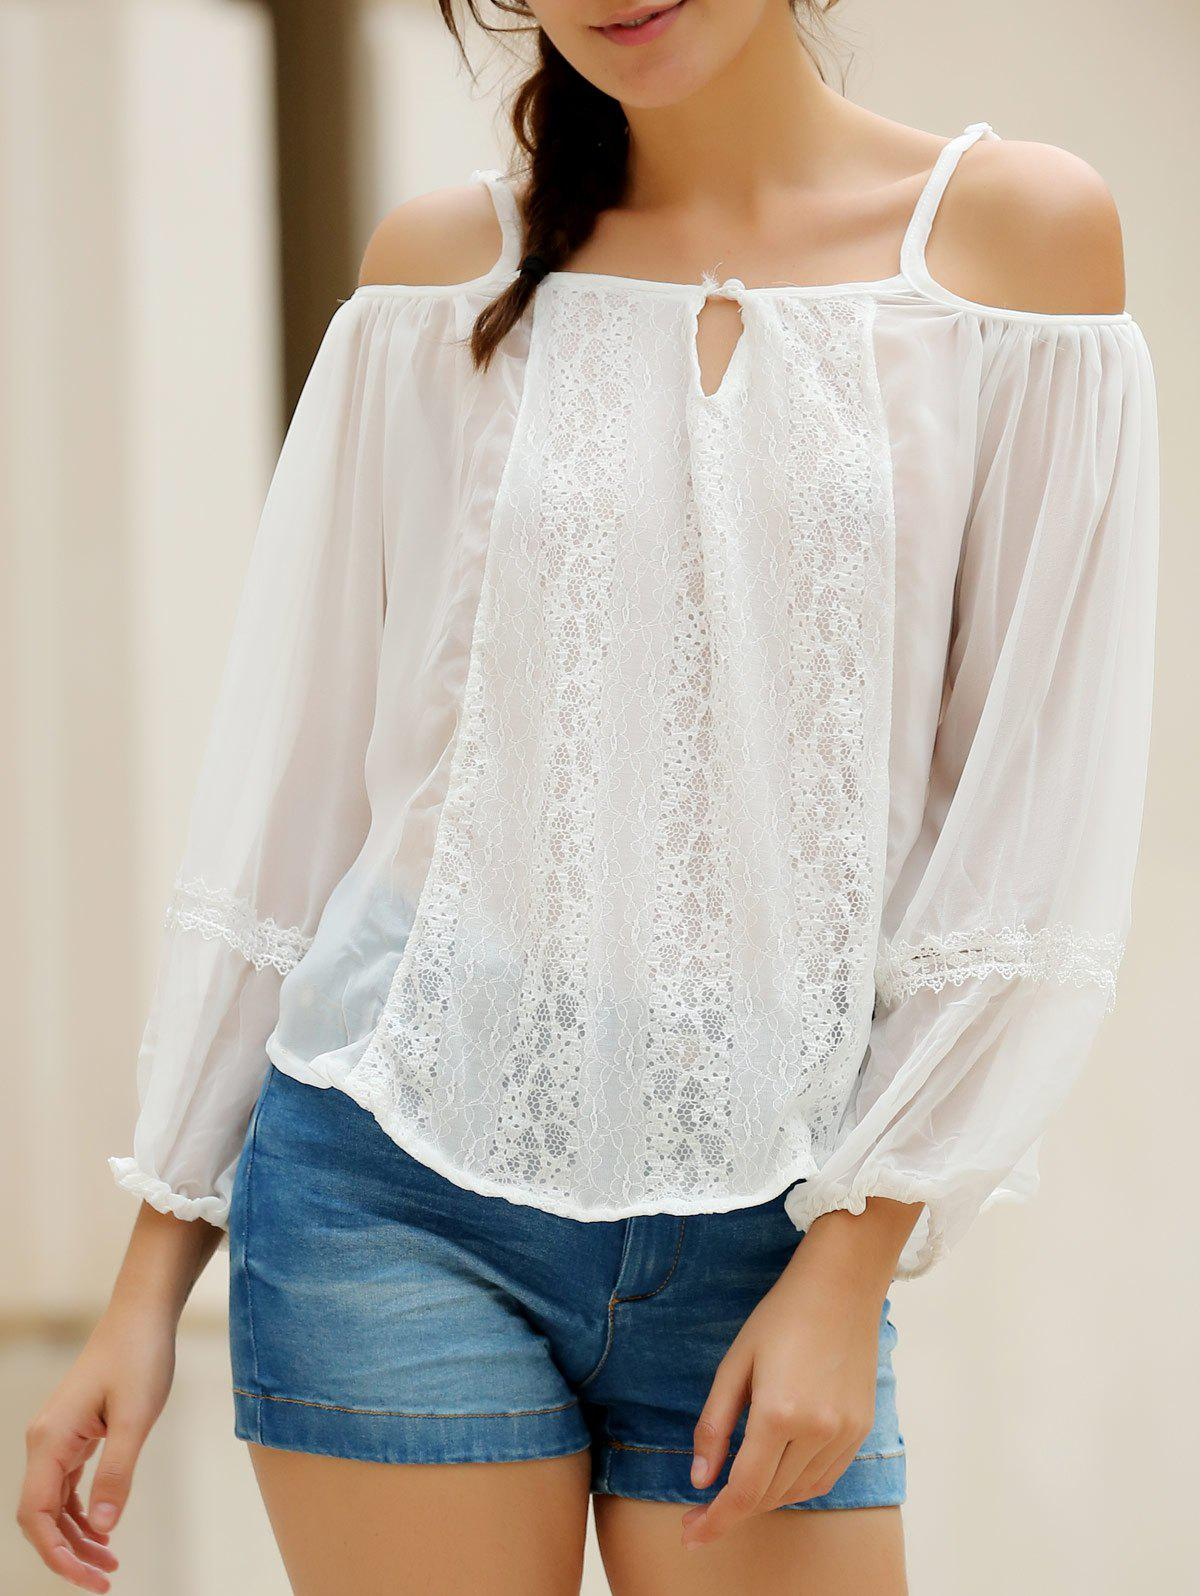 Sexy White Spaghetti Strap Off The Shoulder Long Sleeve Blouse For Women - WHITE S